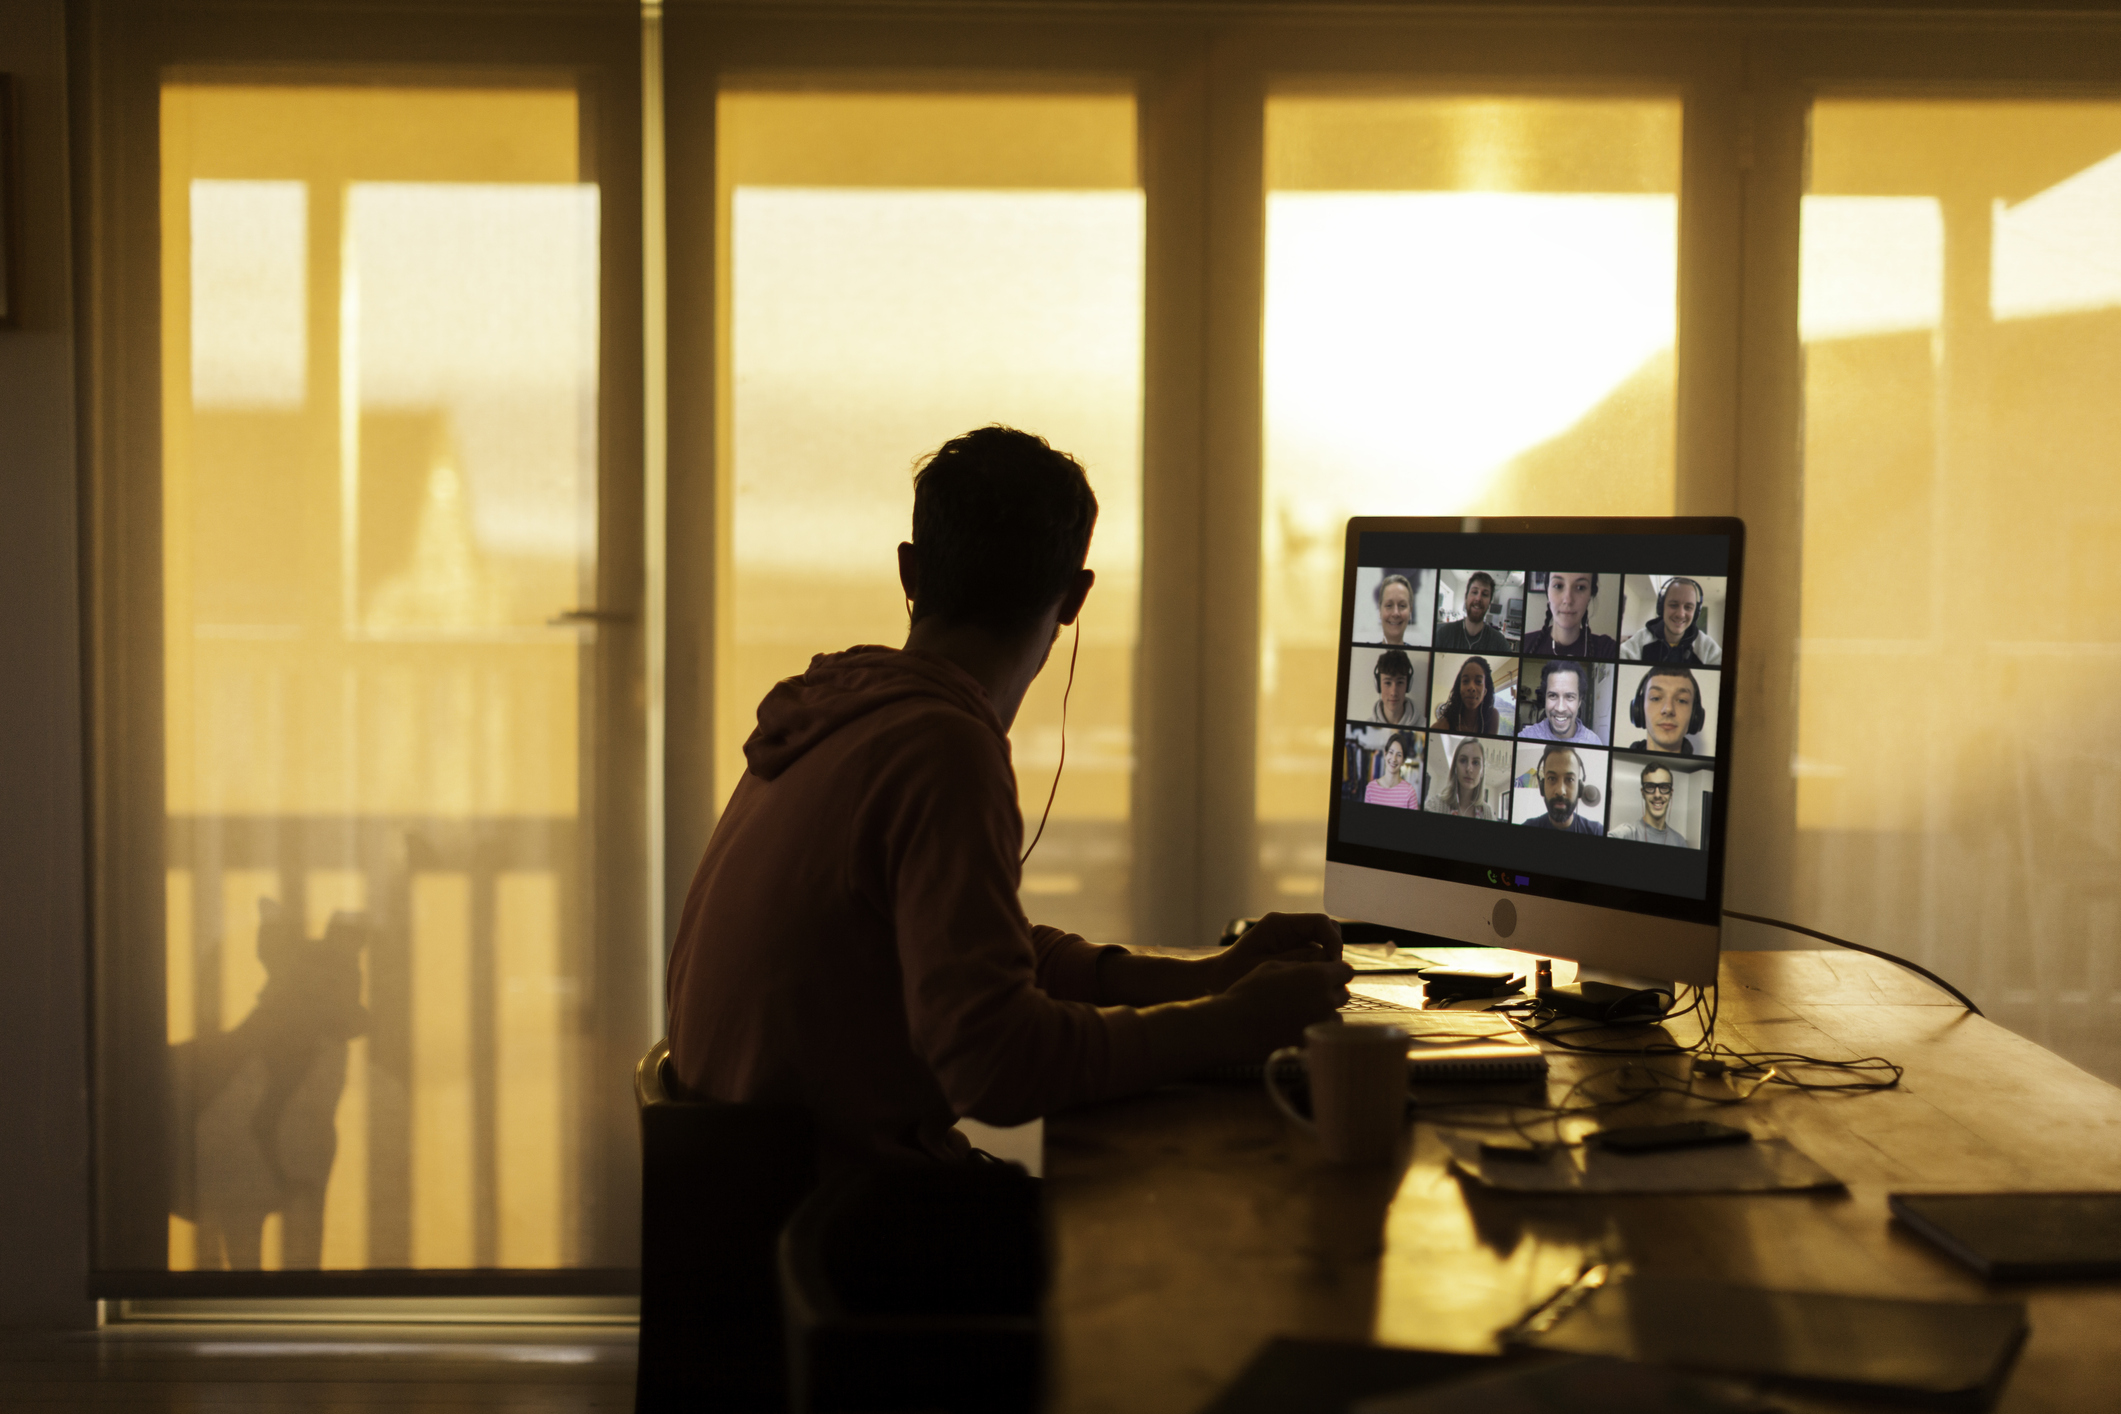 A young man participates in a video meeting.